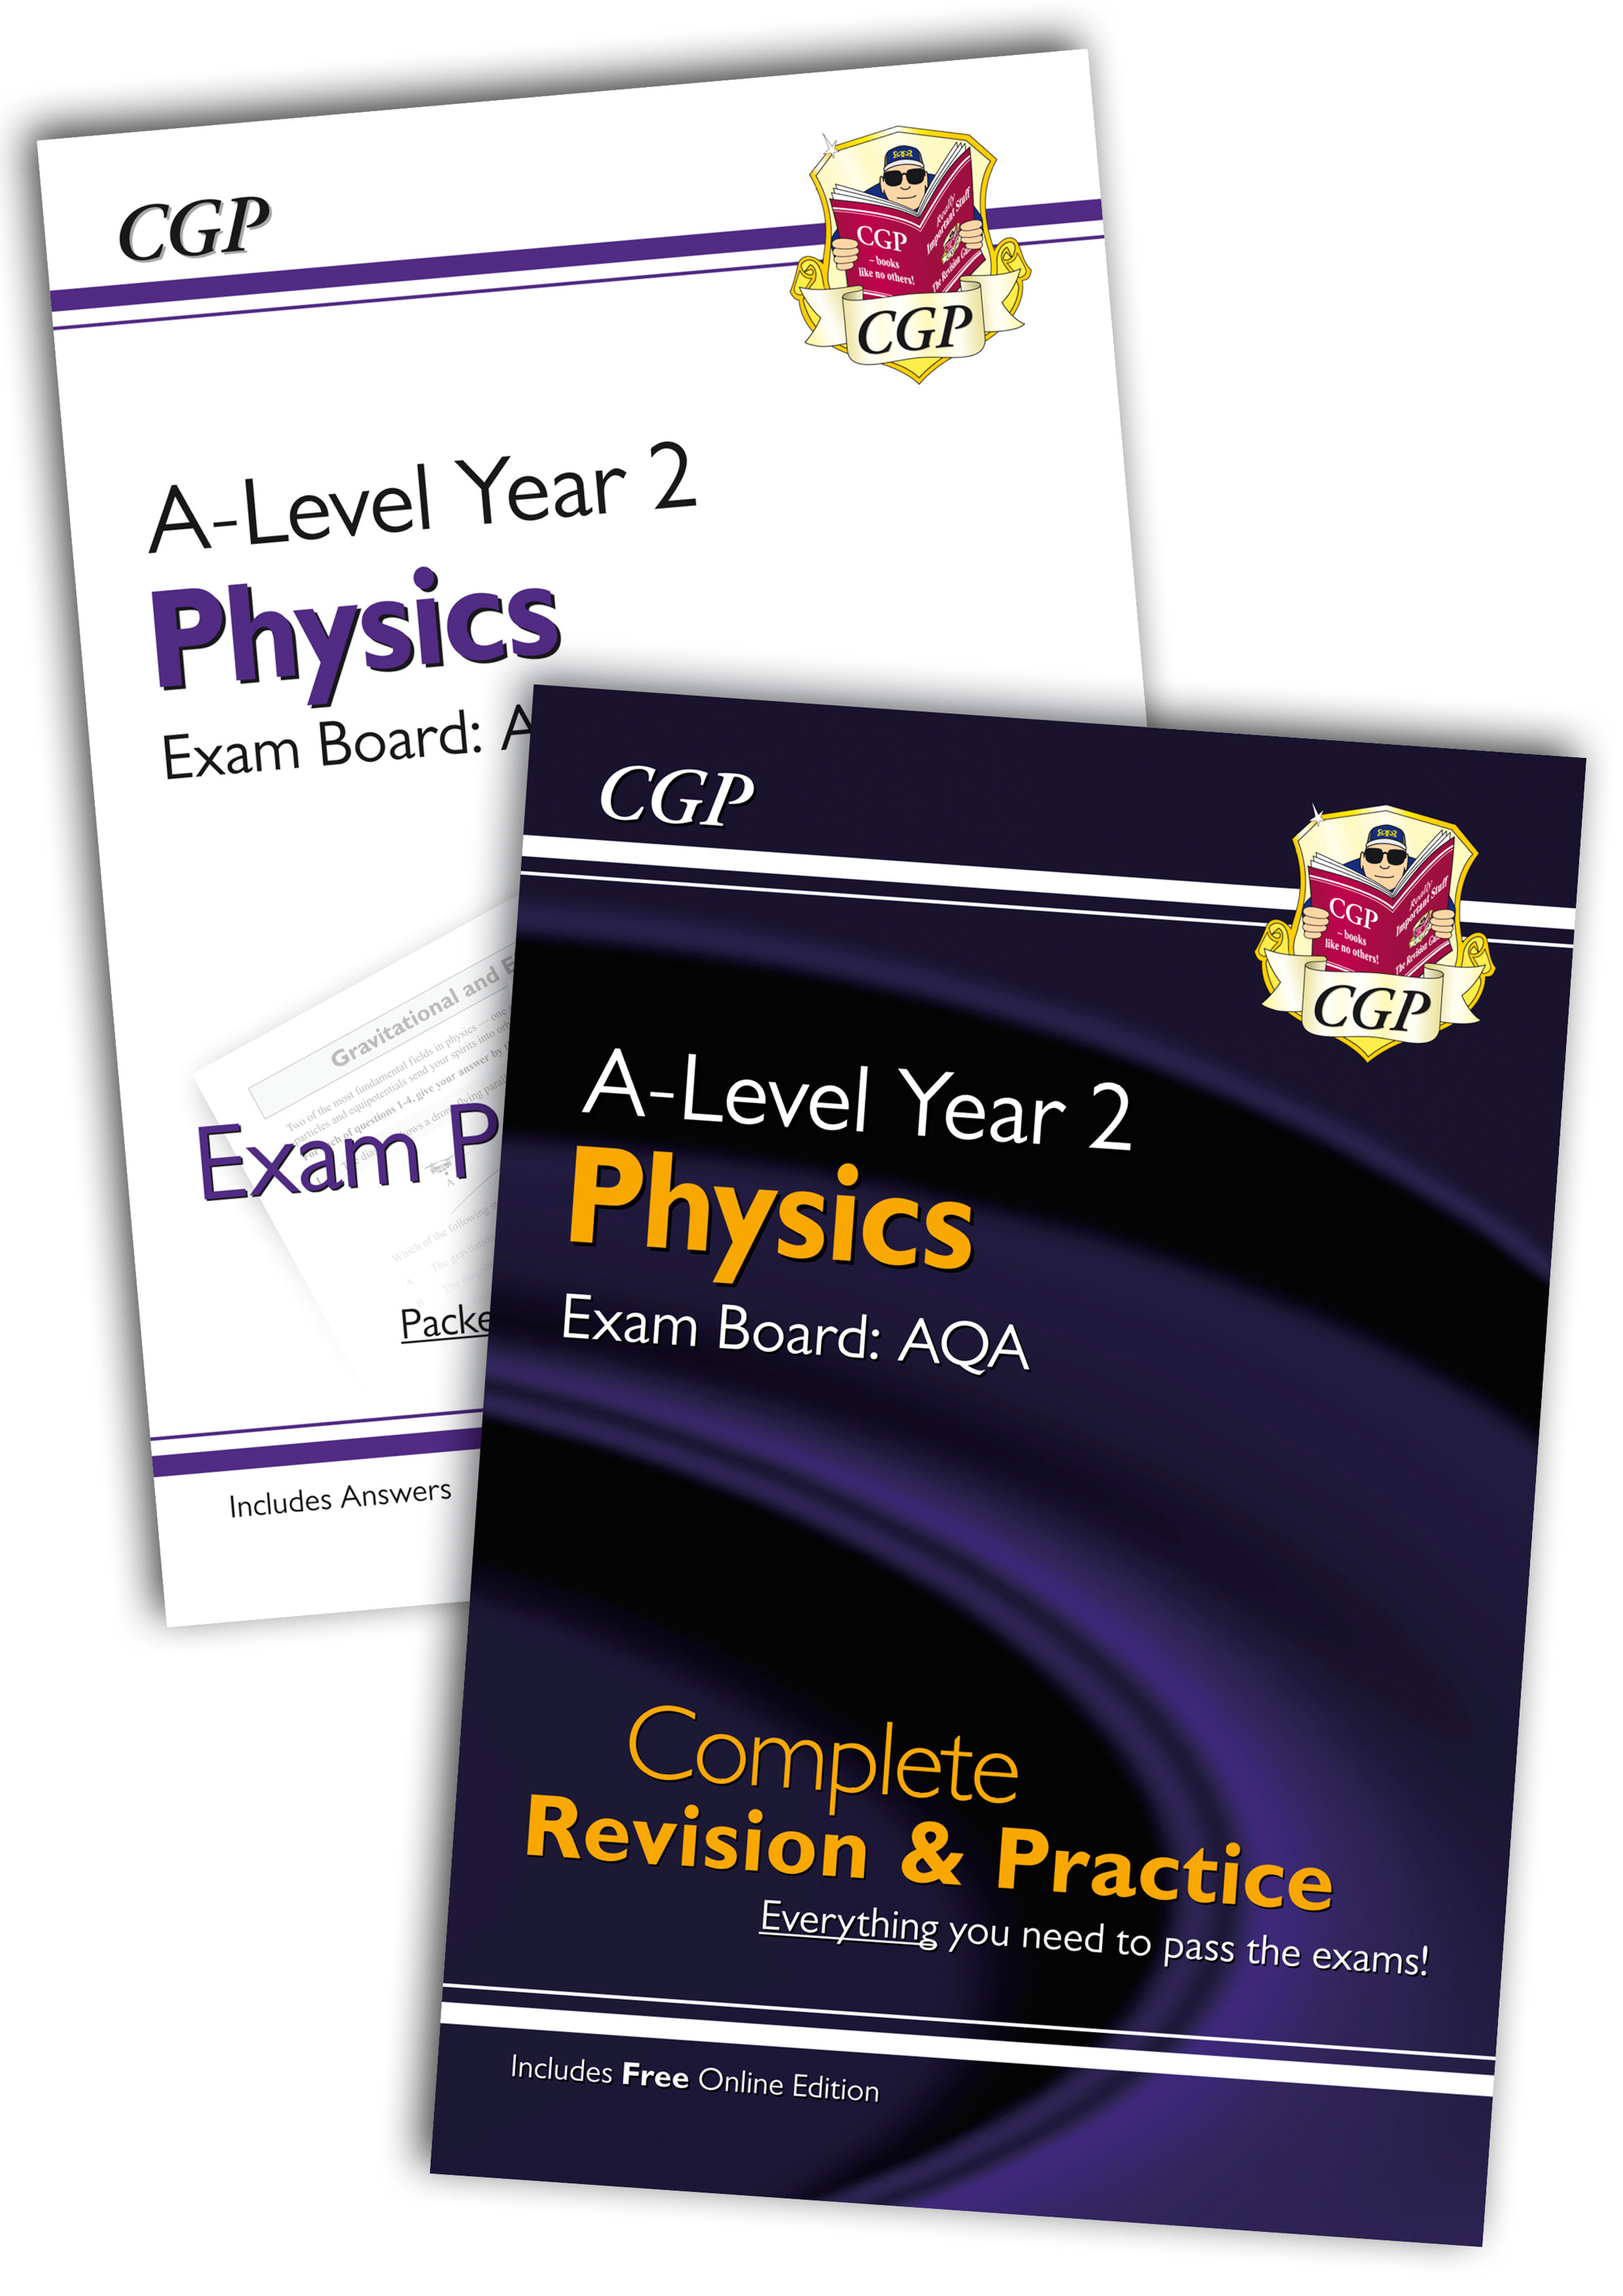 PARQB61 - New Complete Revision and Exam Practice A-Level Physics Bundle: AQA Year 2